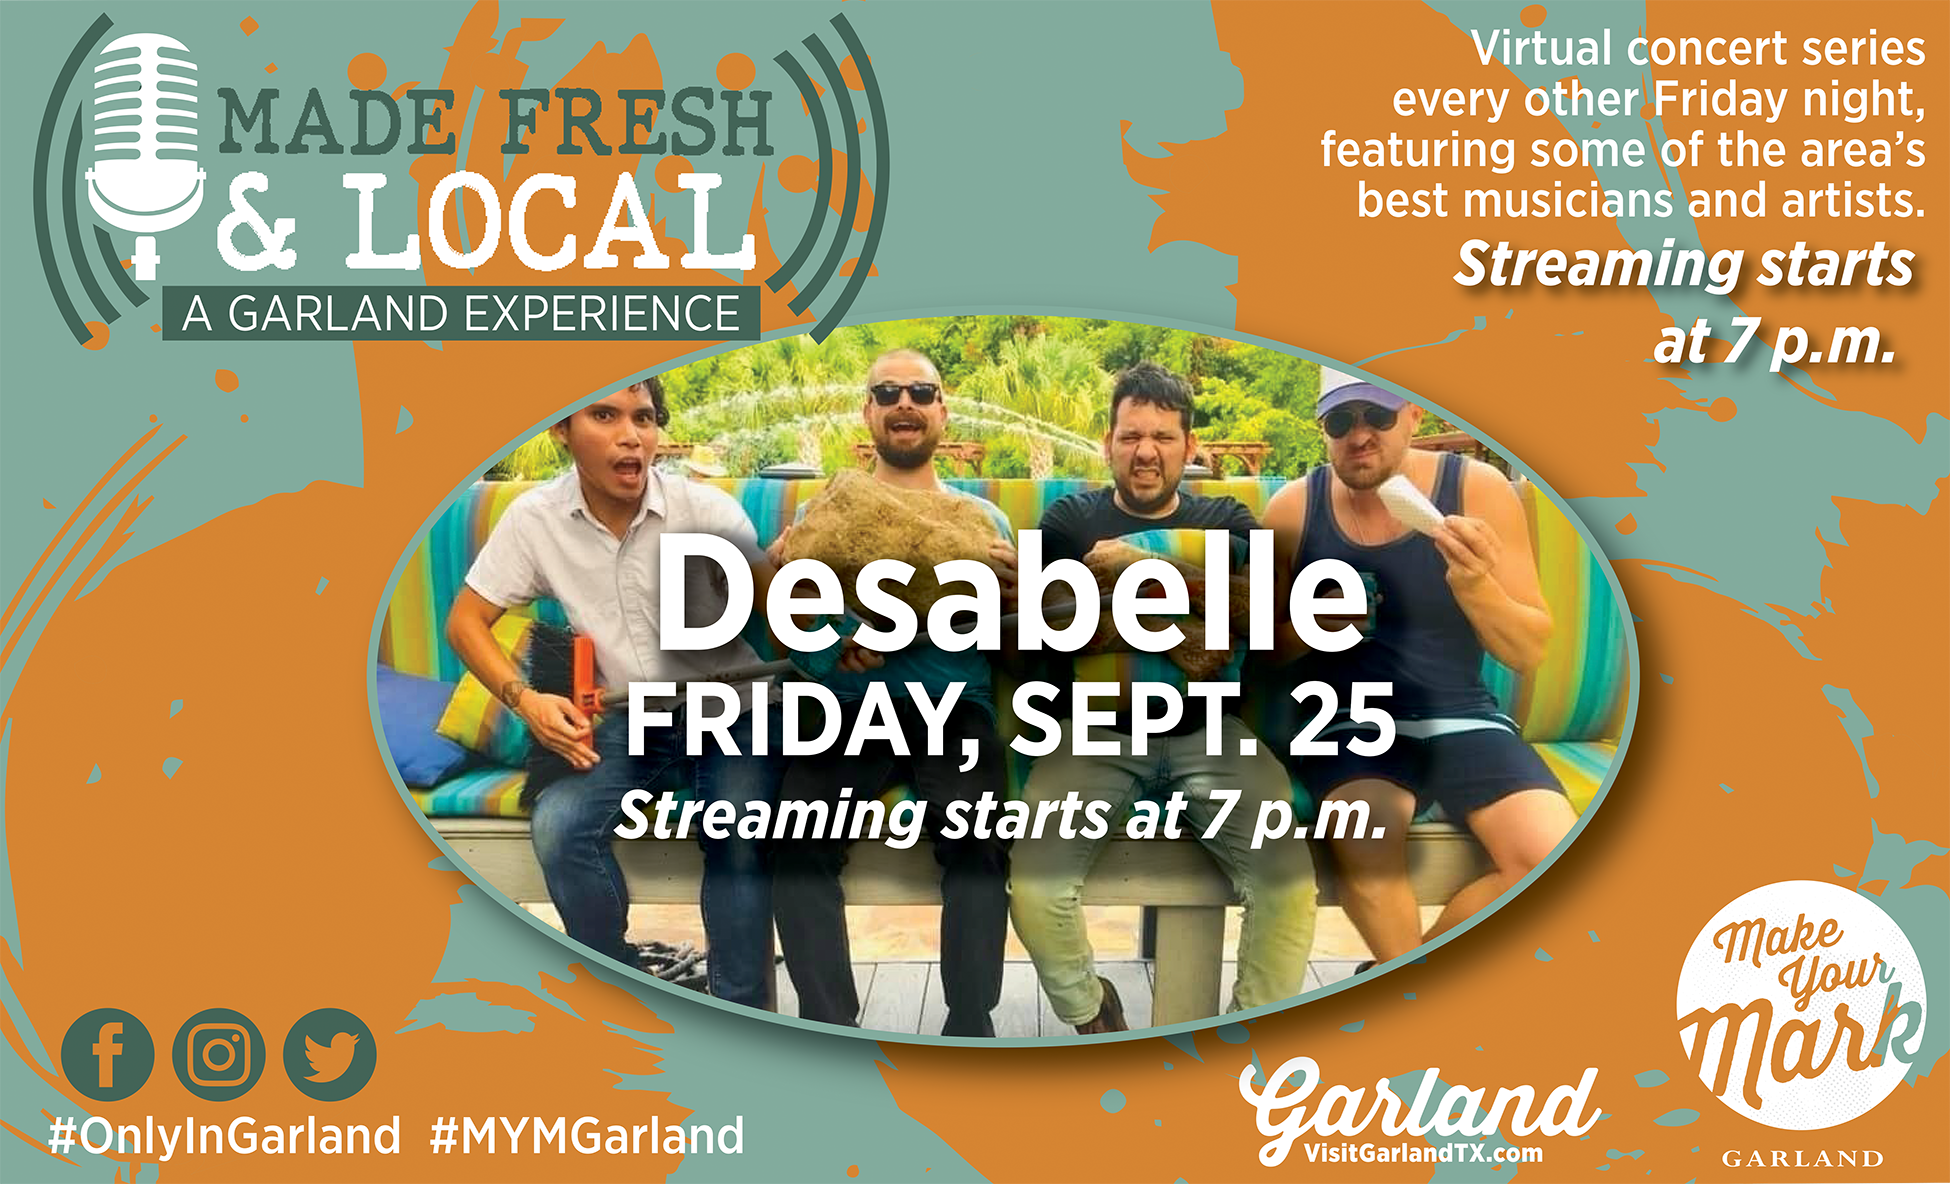 Made Fresh and Local_graphic with the band desabelle on sept 25